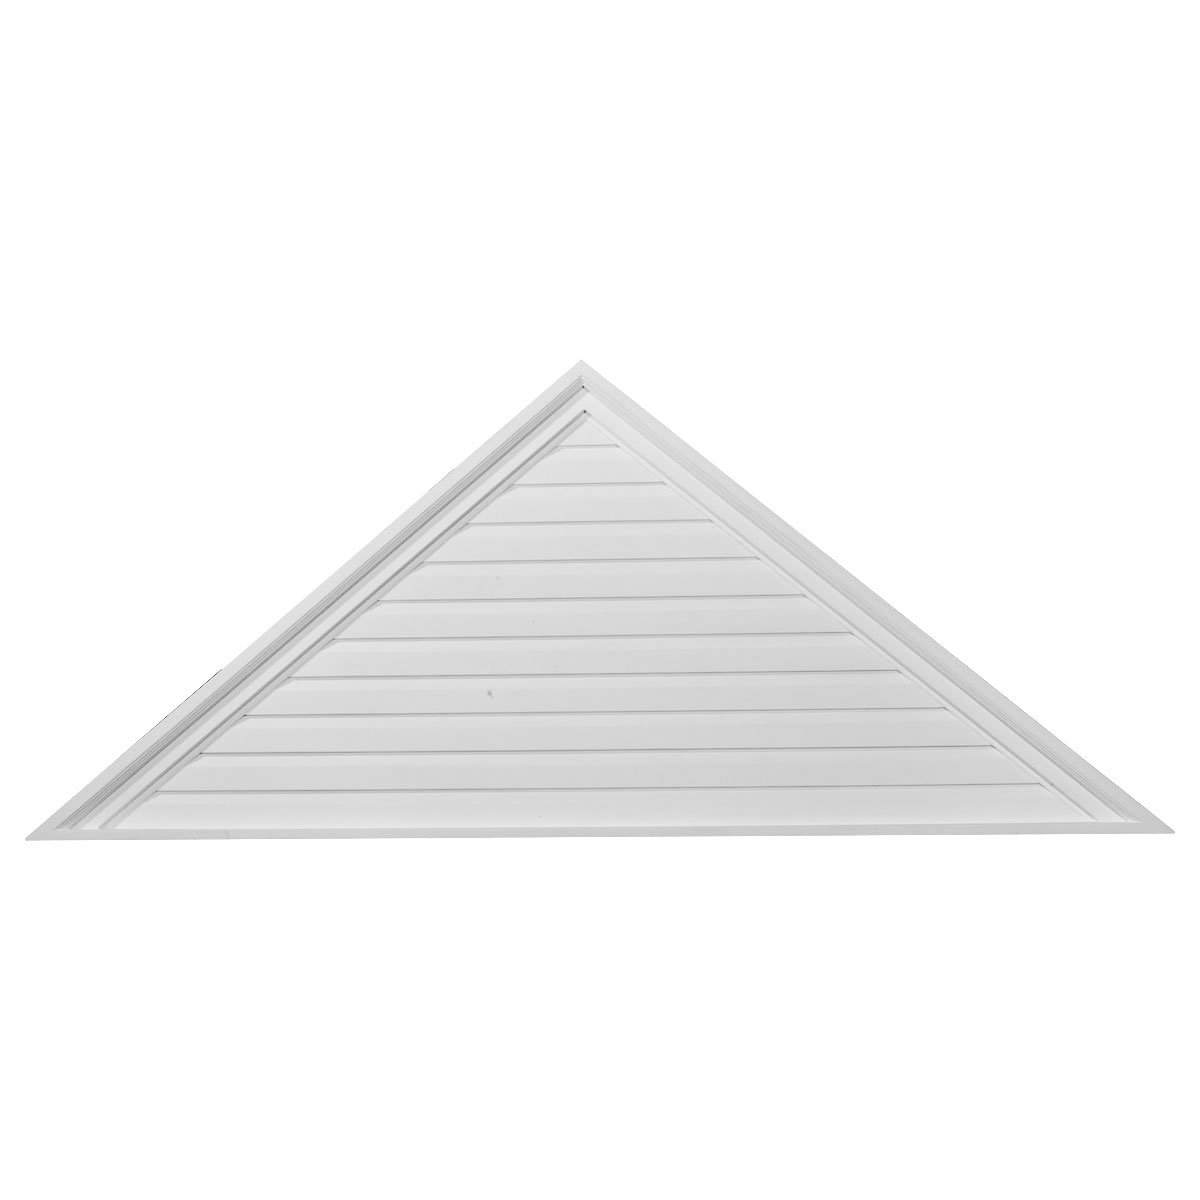 Ekena Millwork GVTR72X18F 72-Inch W x 18-Inch H x 2 1/4-Inch P Pitch 6/12 Triangle Gable Vent, Functional